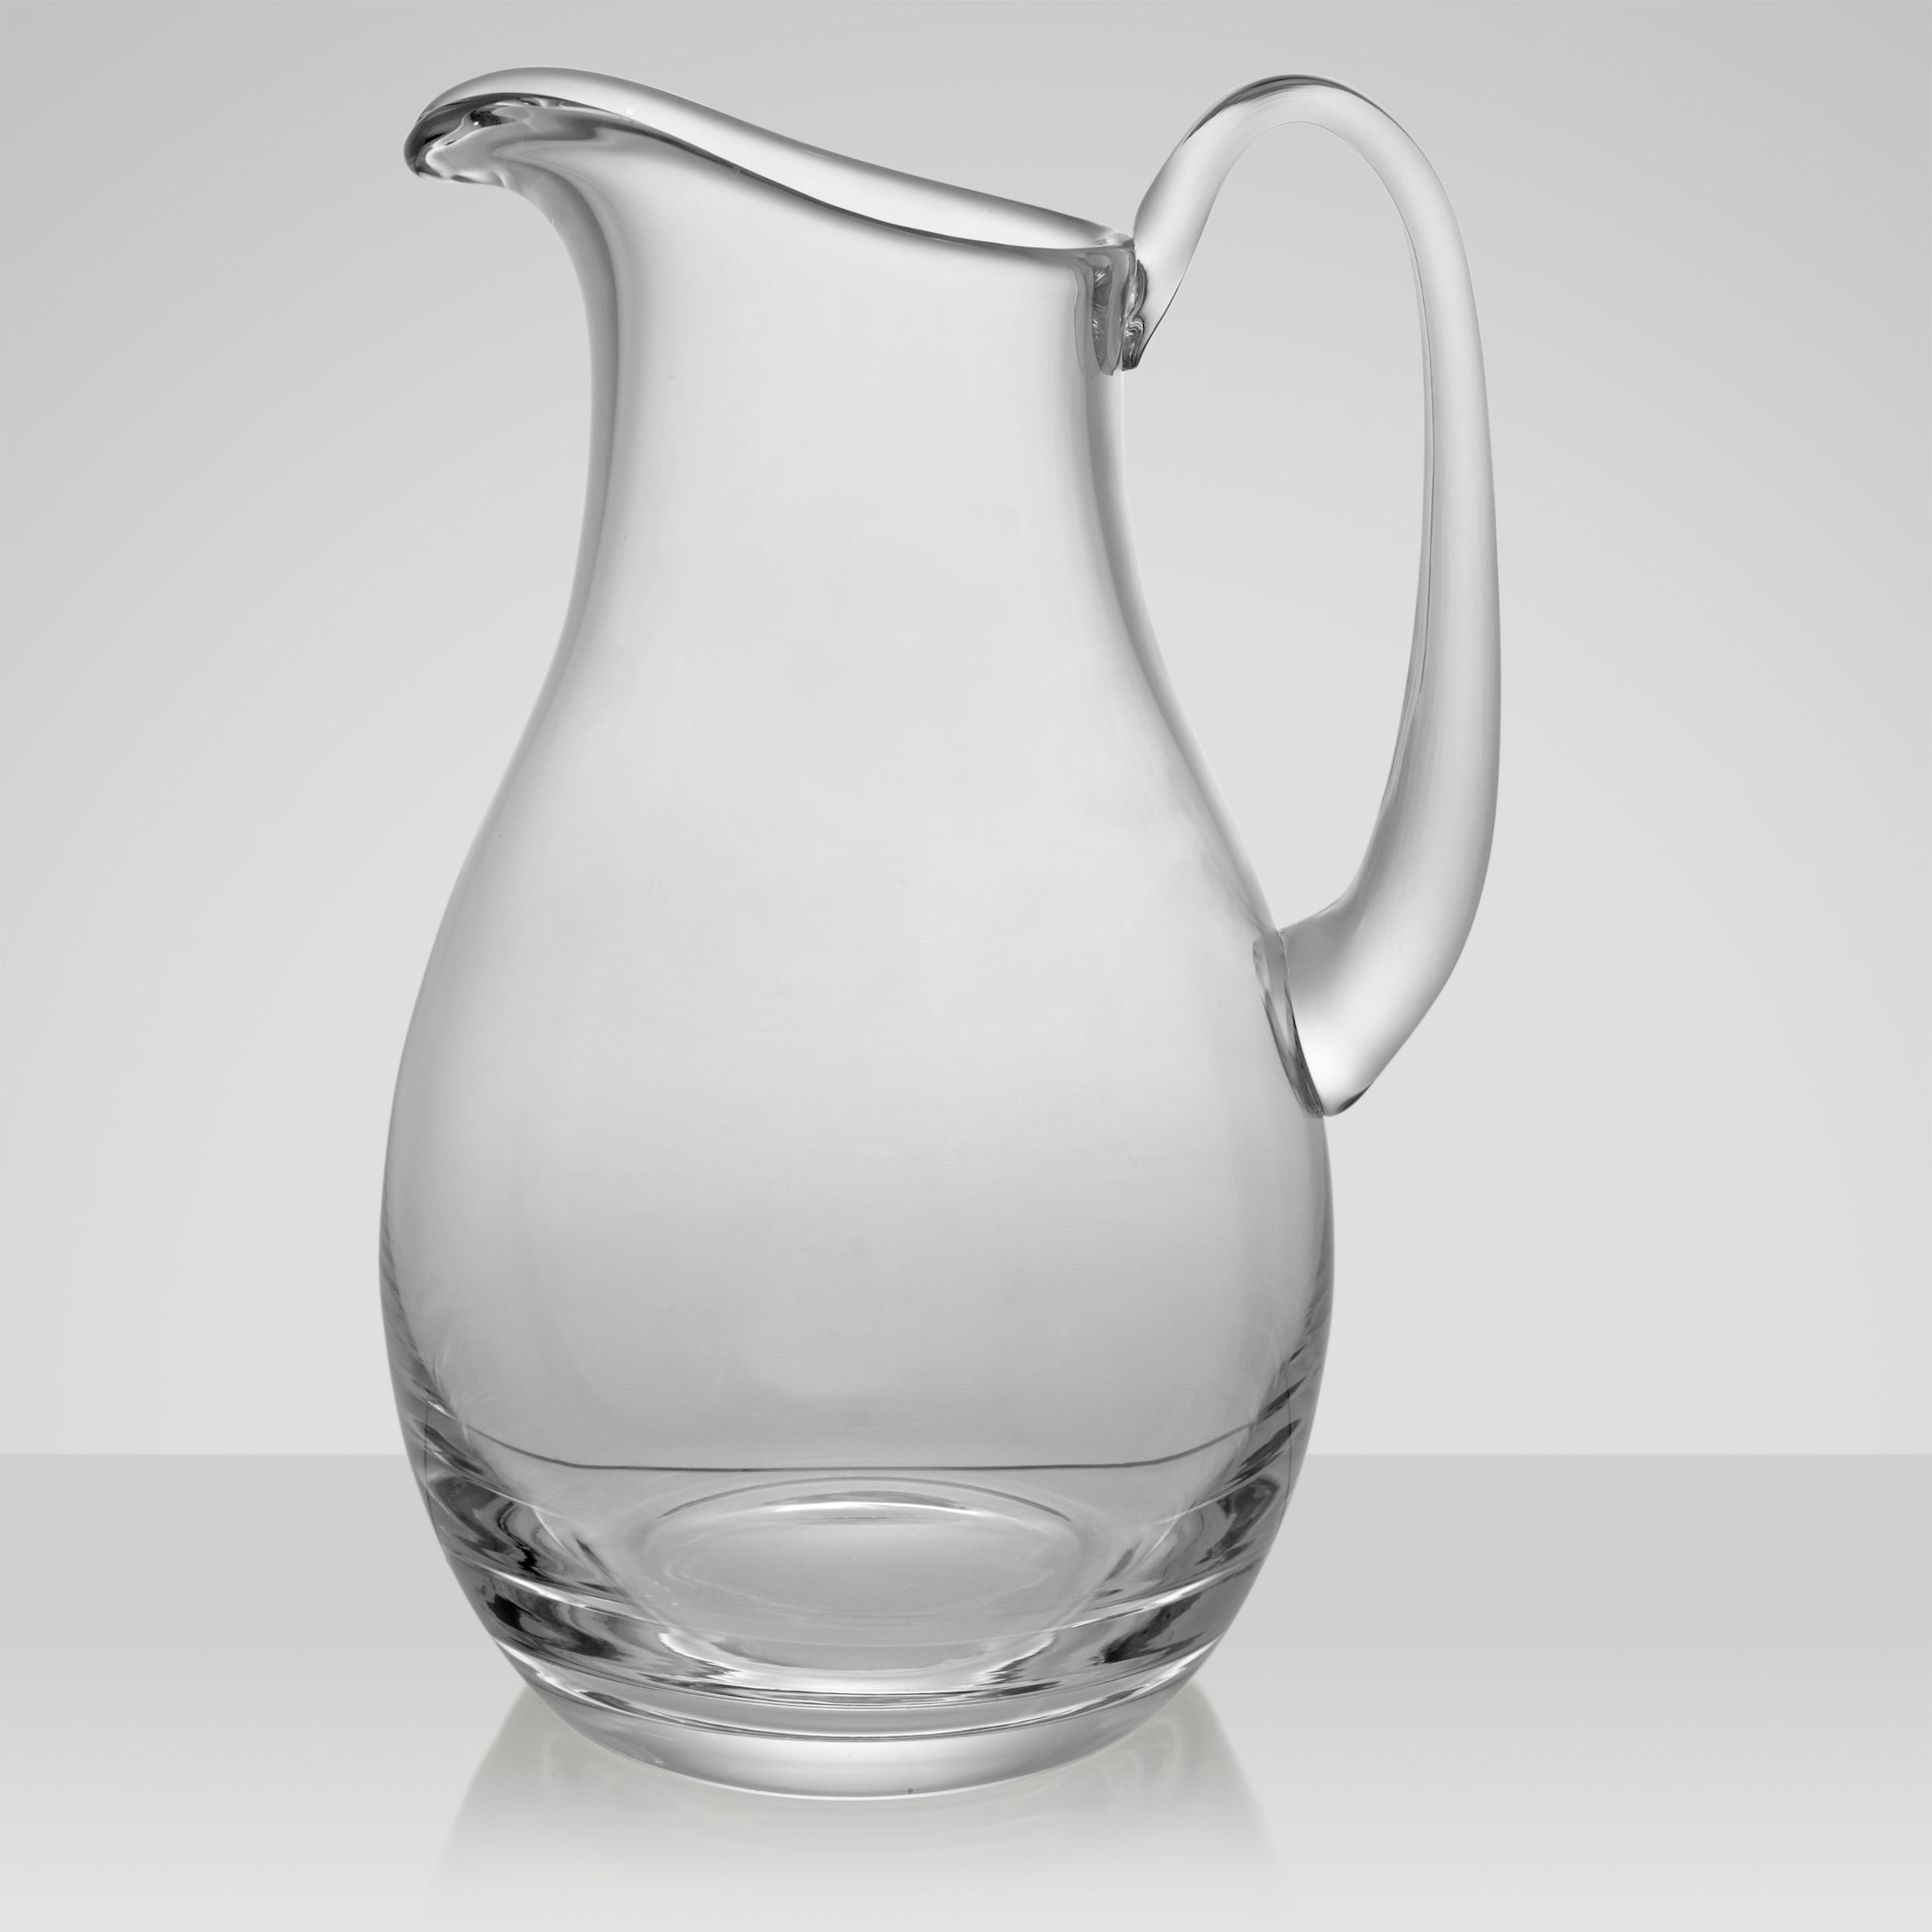 Find great deals on eBay for glass jug. Shop with confidence.